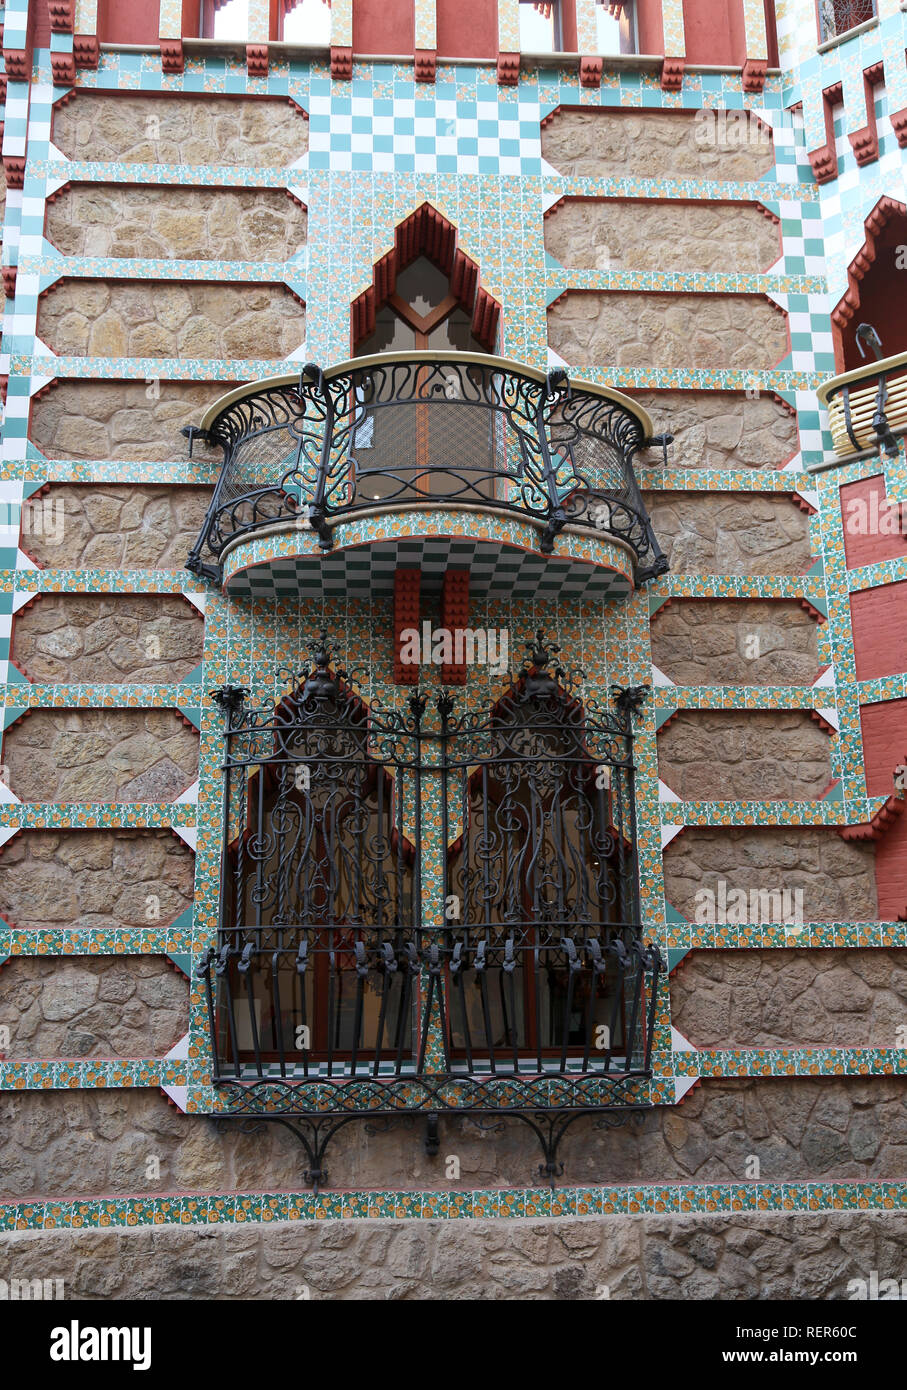 Casa Vicens, built from 1883 to 1885. First project of the architect Gaudí. Balcony and windows, street facade. Decorative iron gratings. Stock Photo